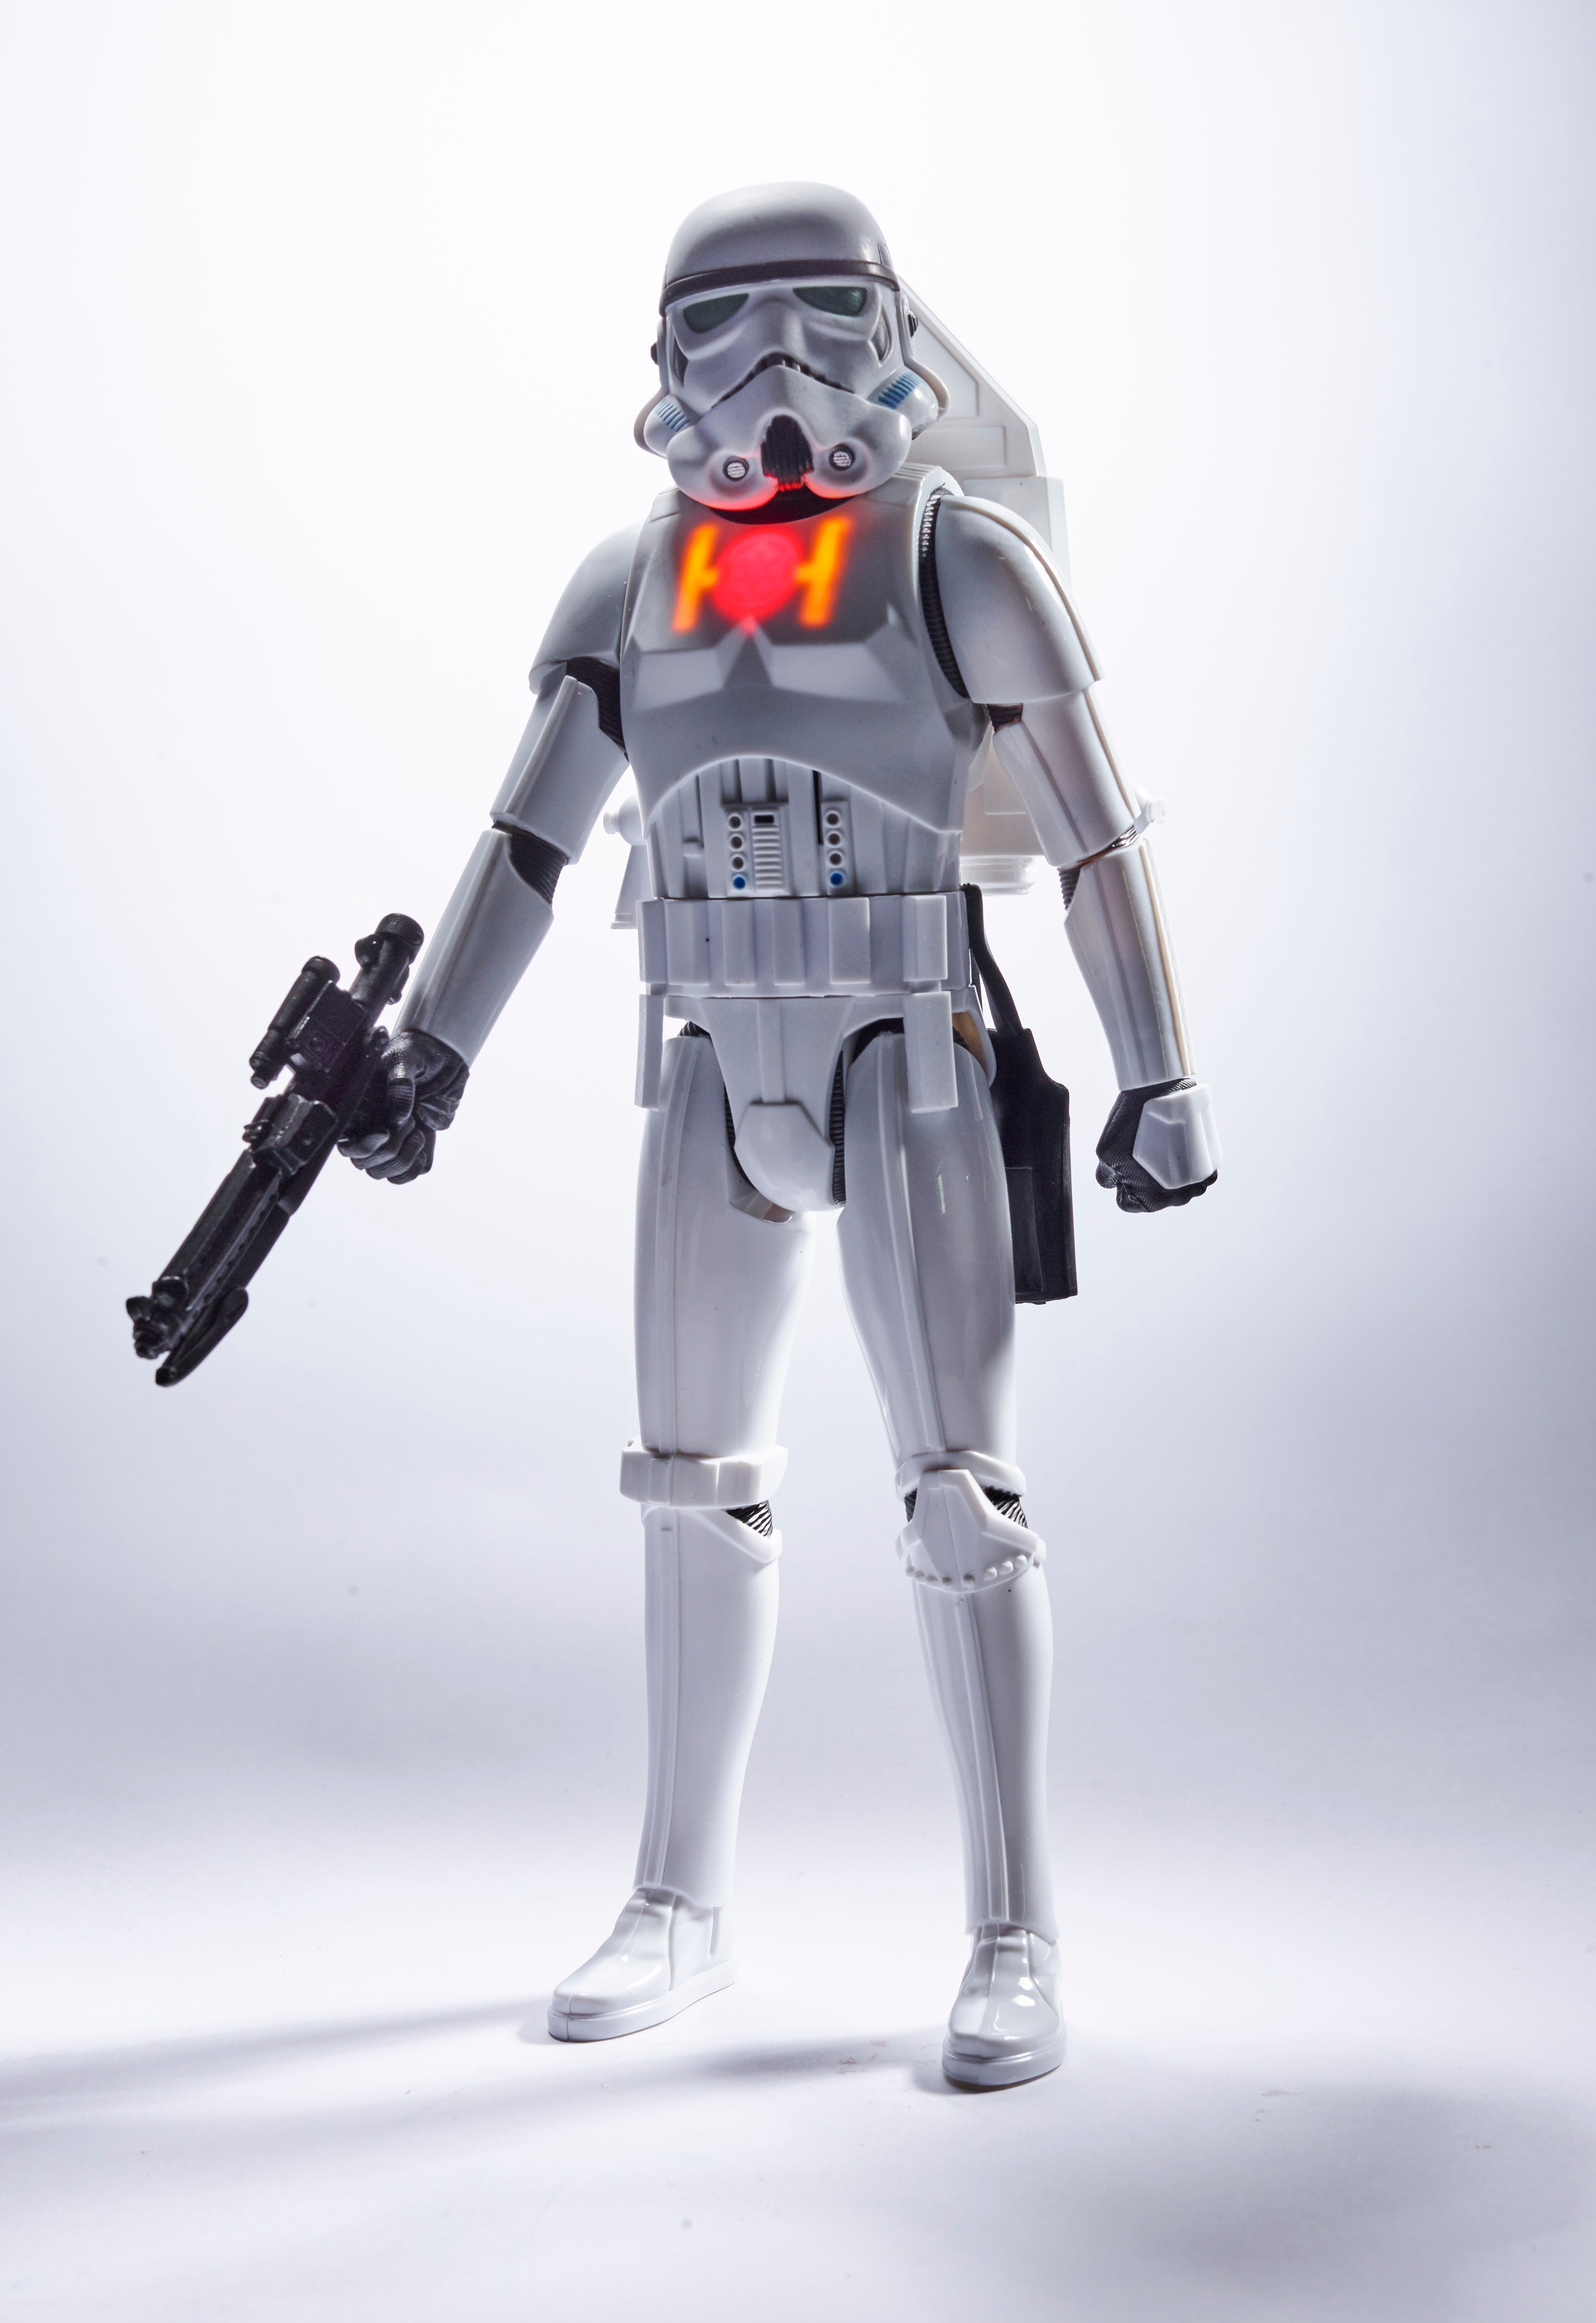 star-wars-12-inch-interactech-imperial-stormtrooper-figure-1